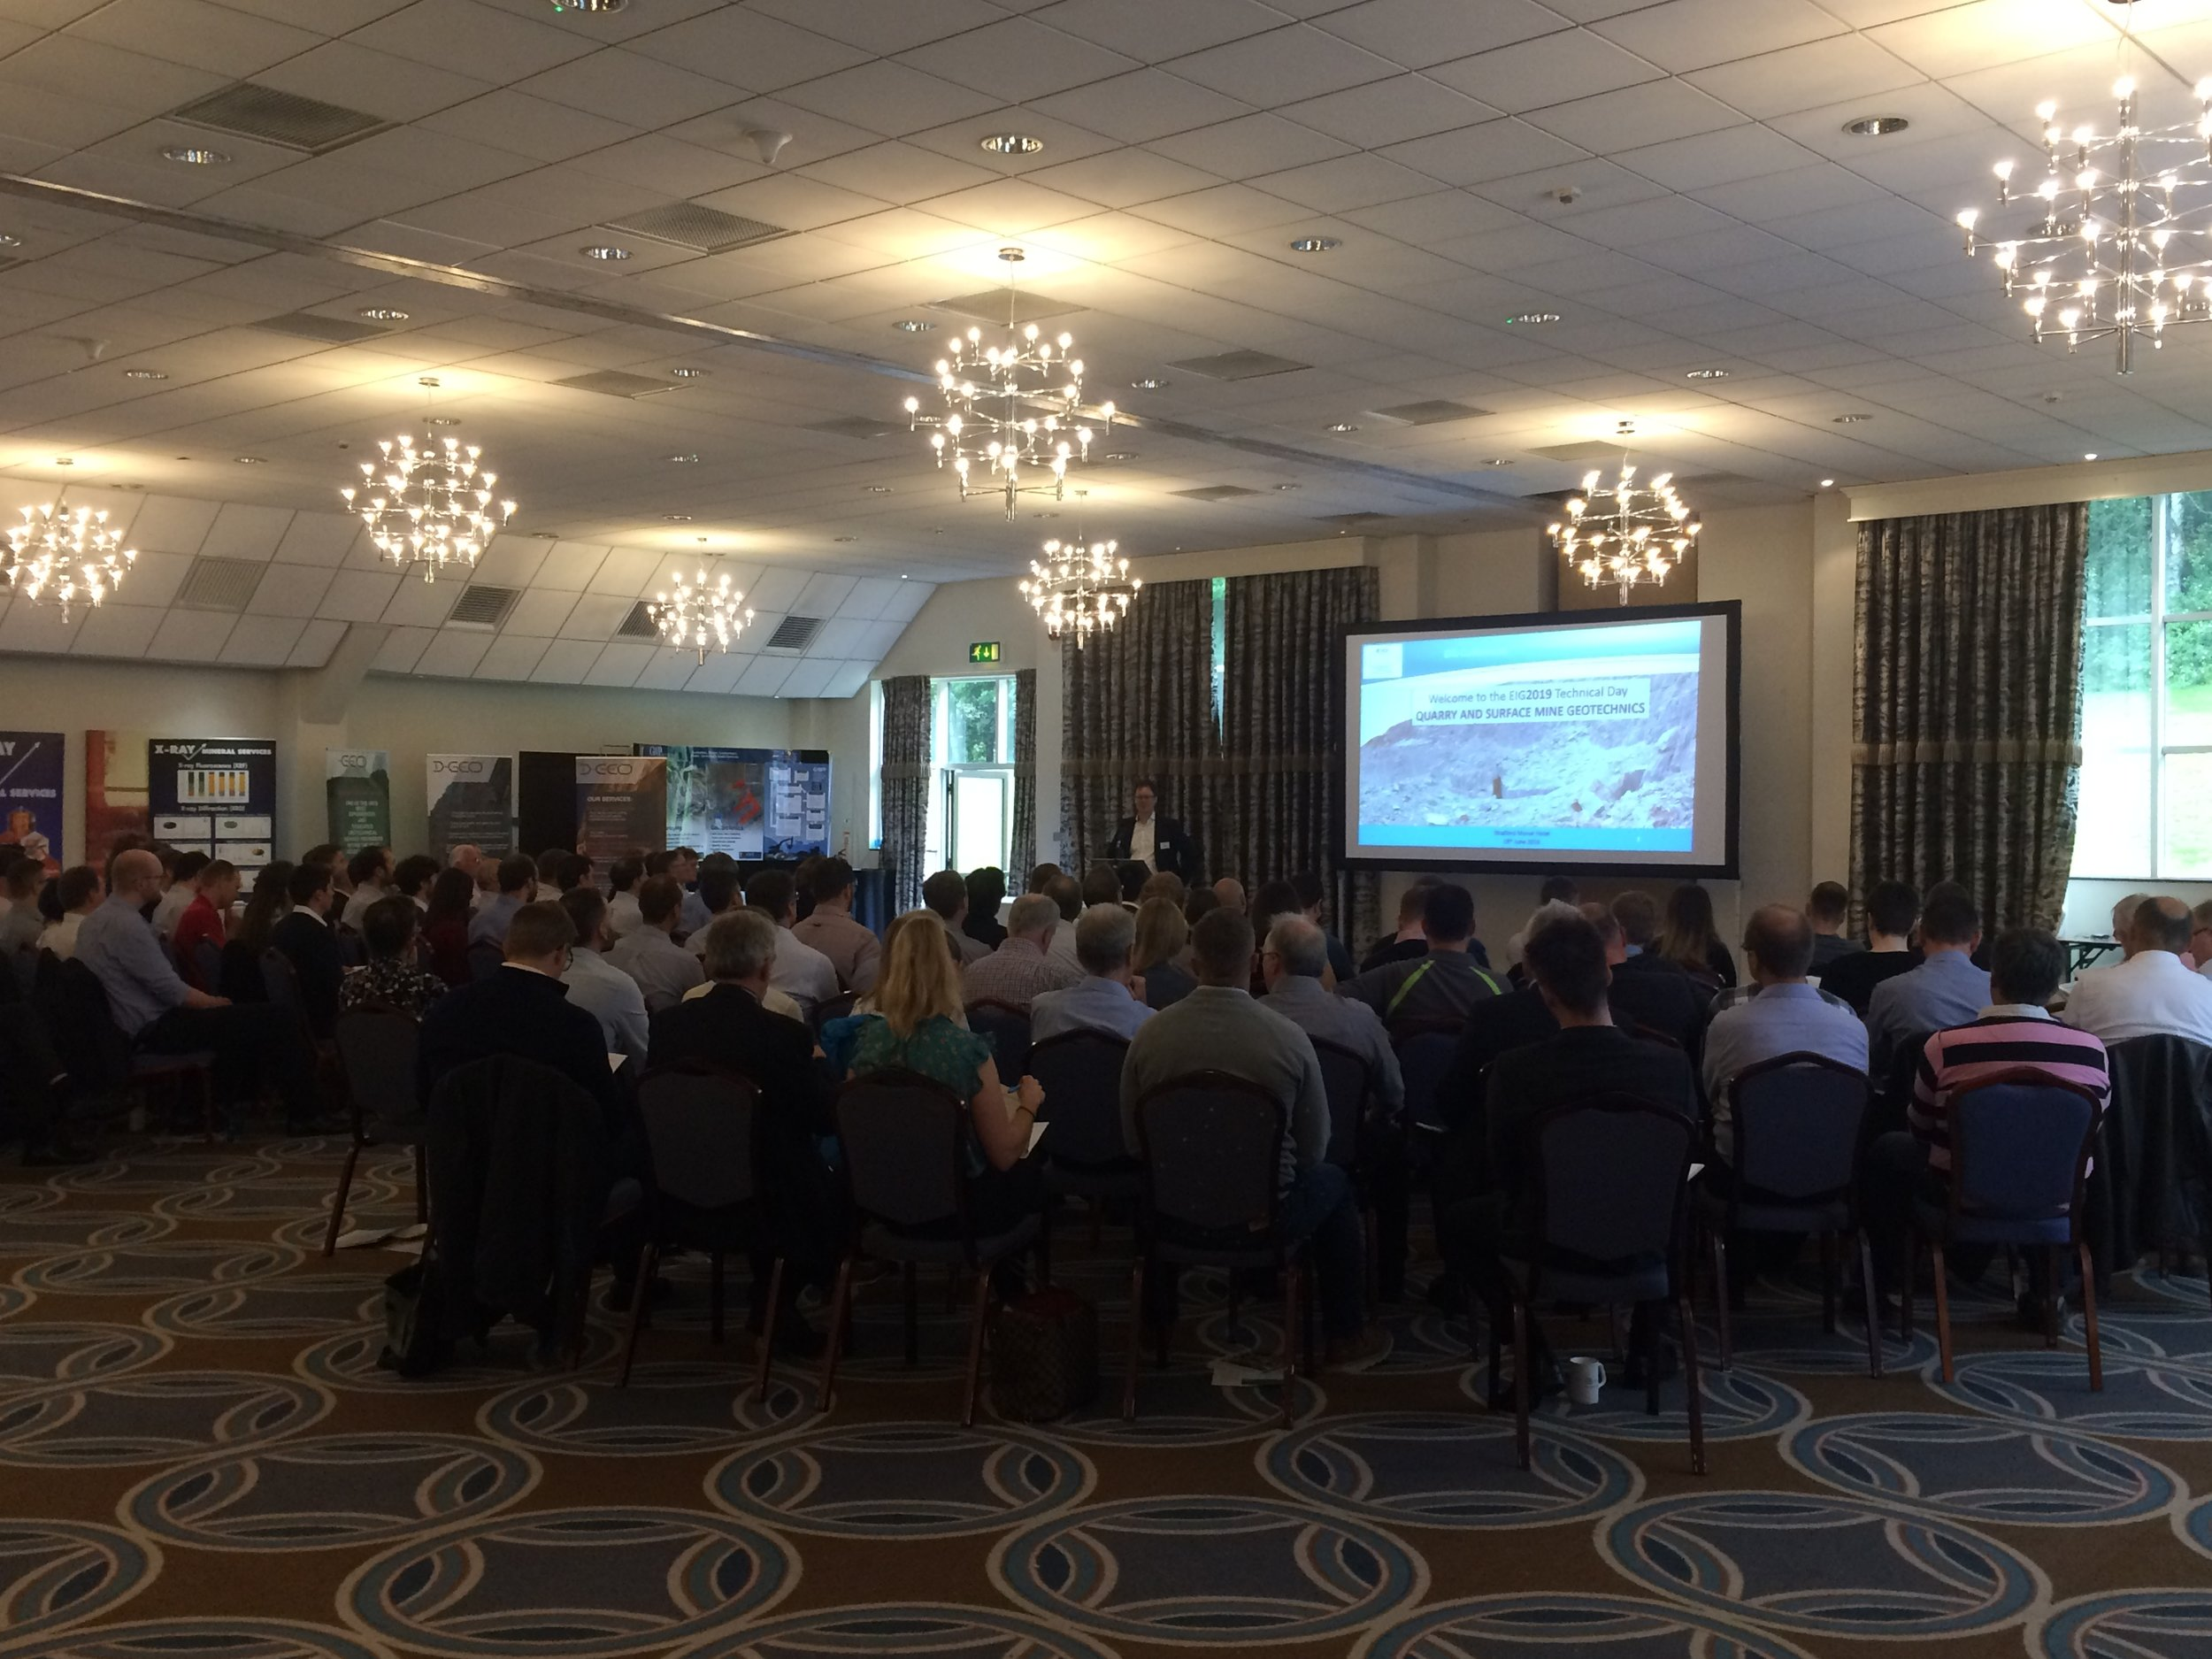 - The event proved popular with 110 delegates in adttendance reprsenting a wide spectrum across the industry, including academics and regulators.